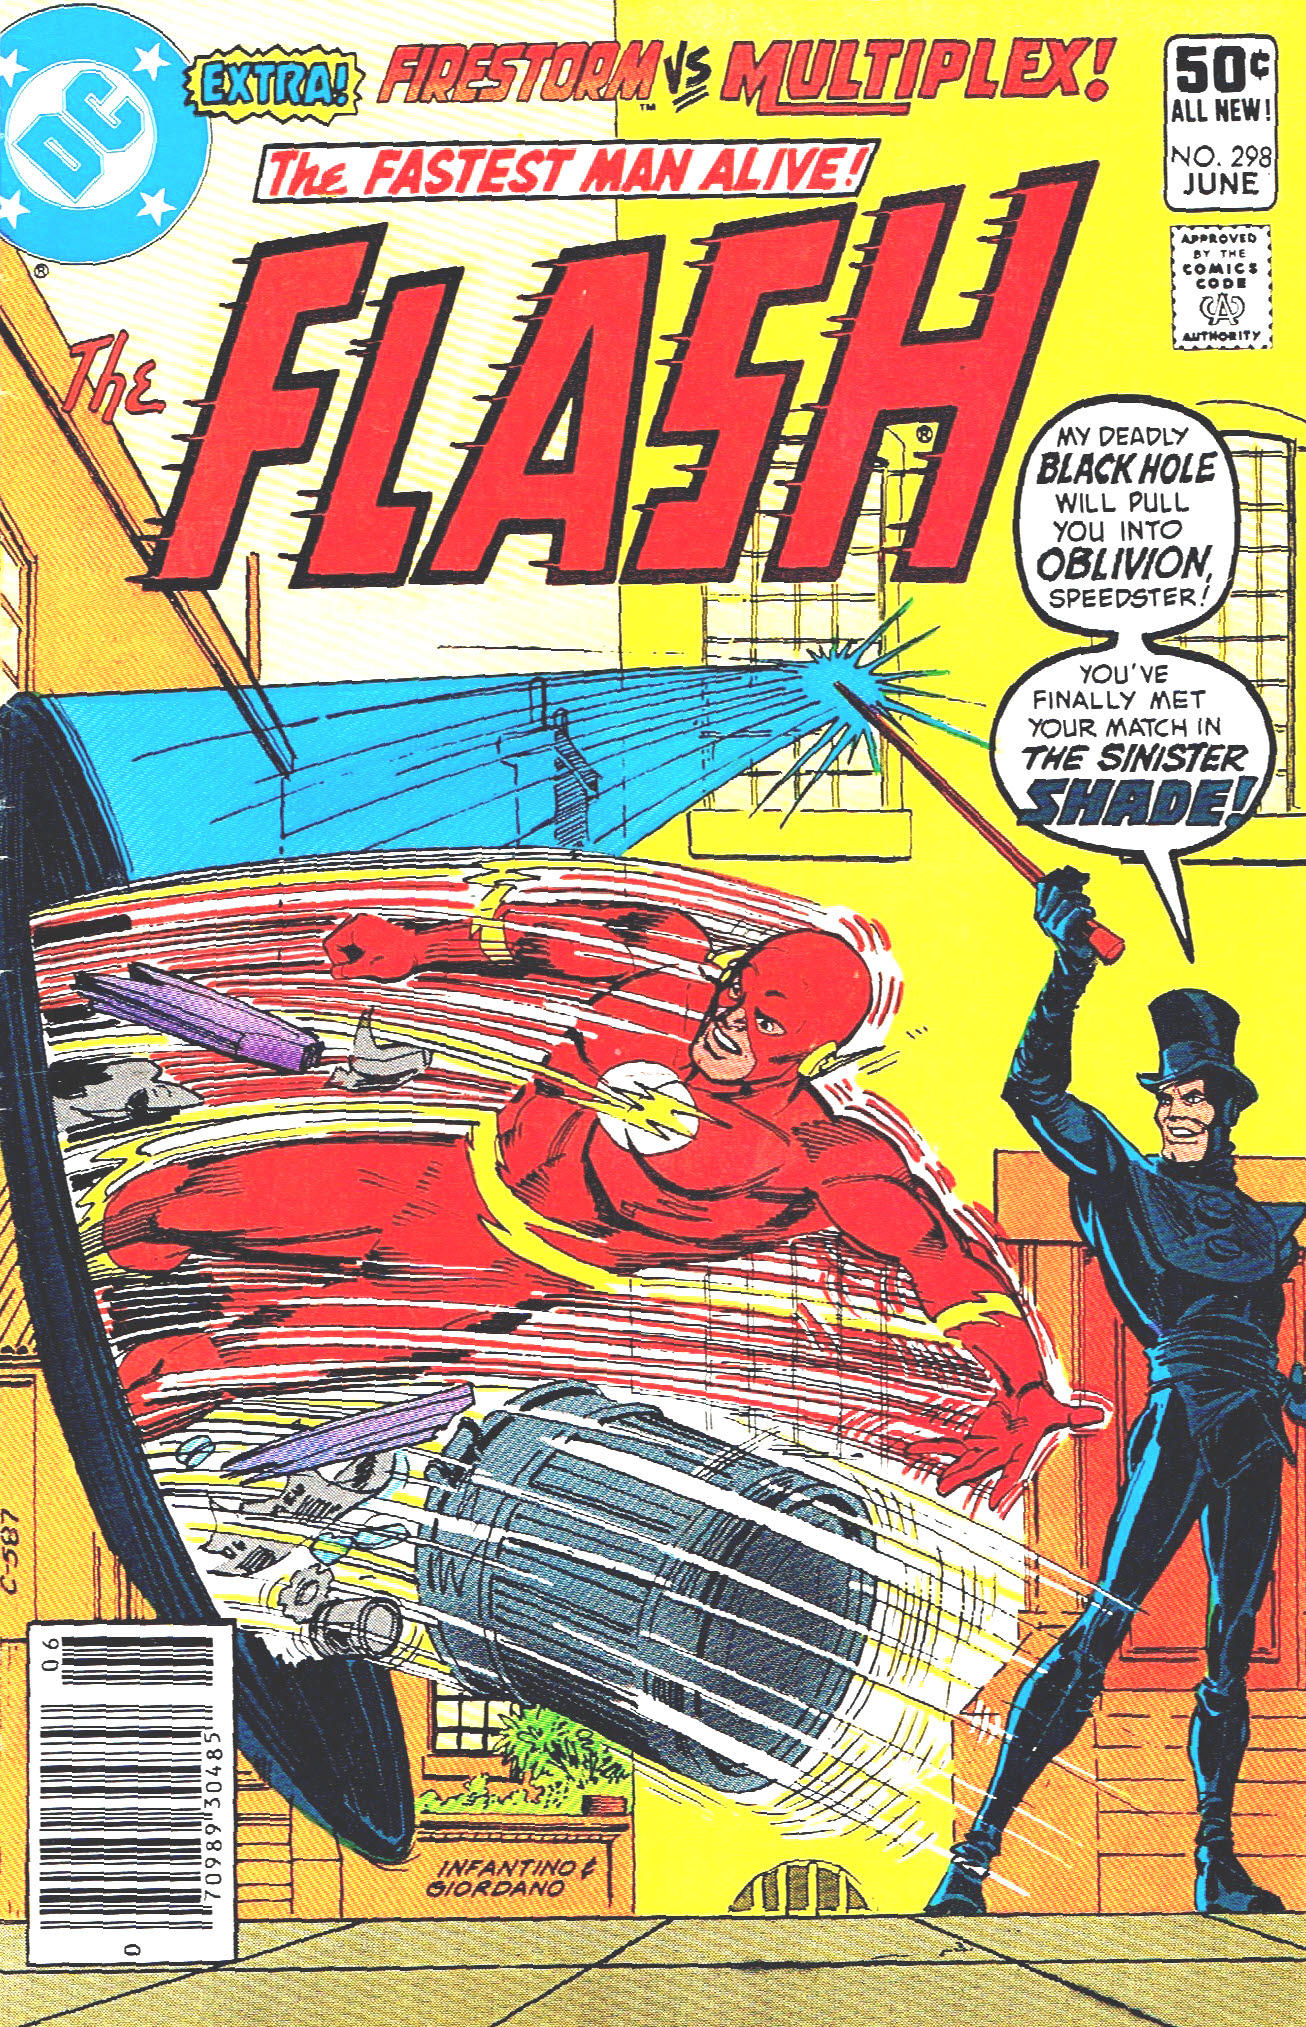 The Flash (1959) 298 Page 1